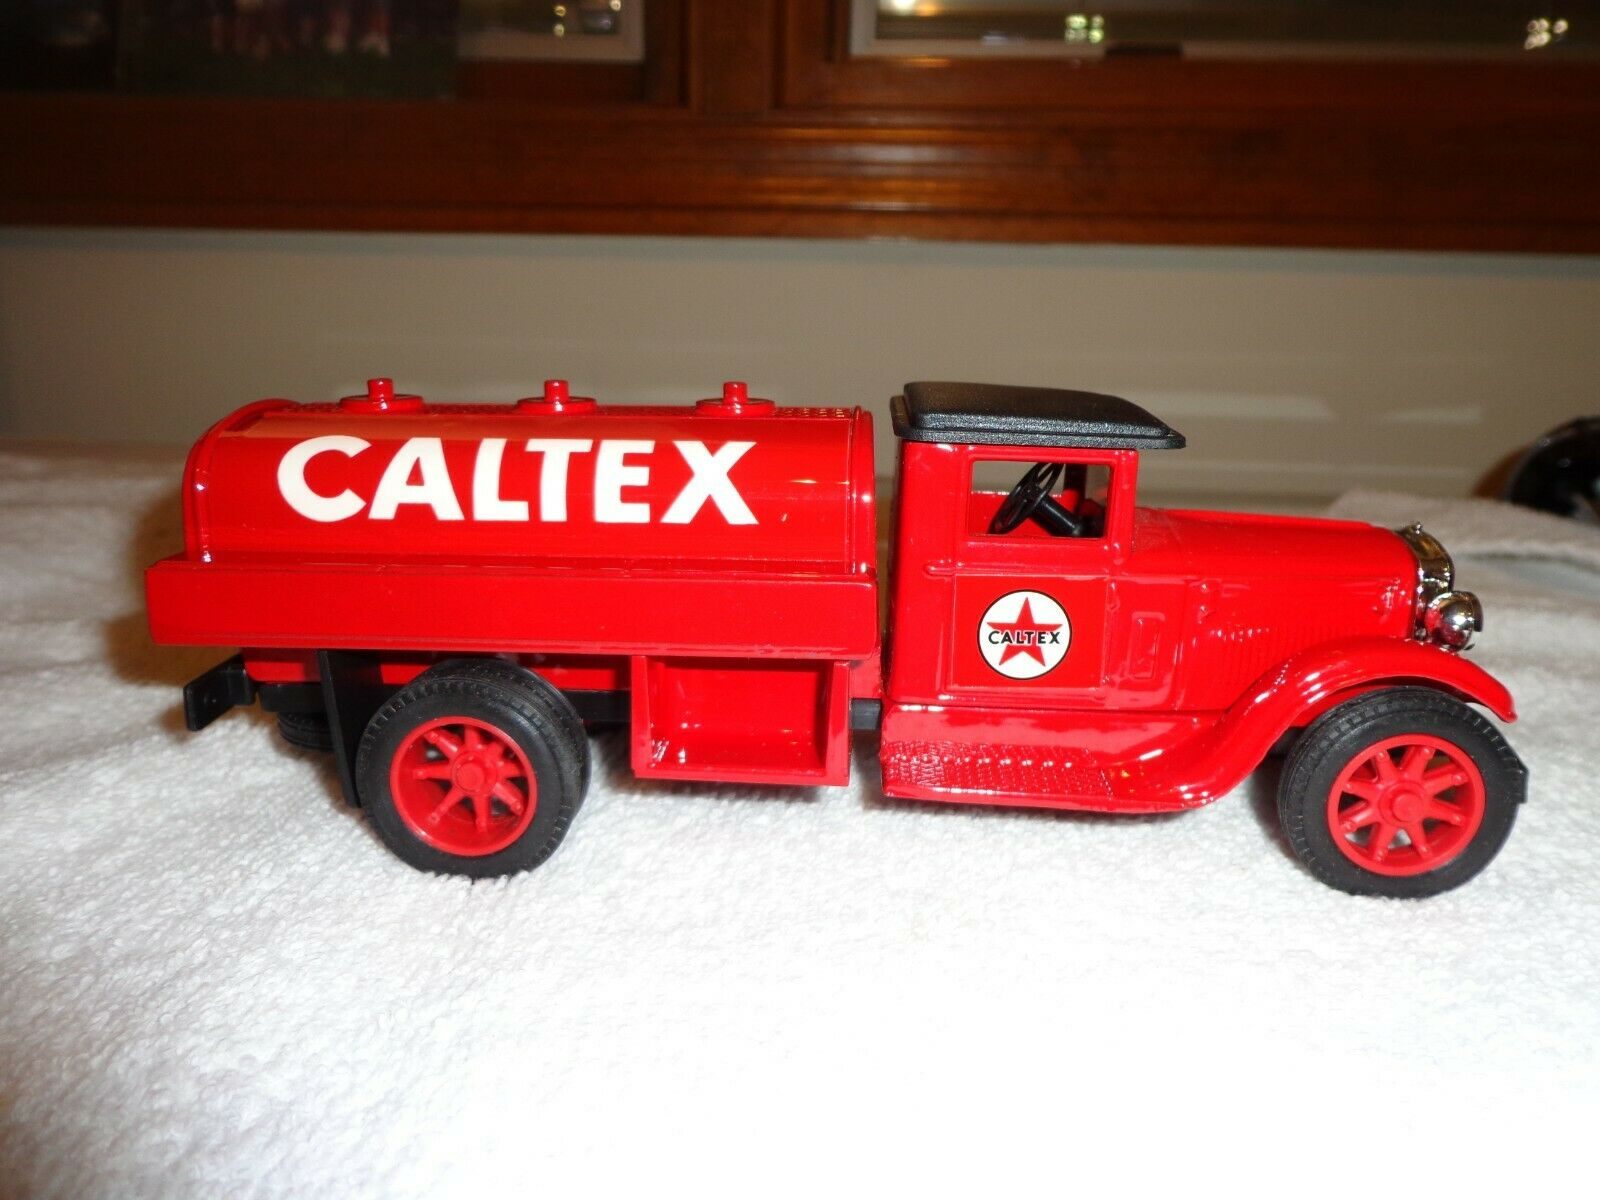 Image 1 - Rare-Vintage-Texaco-Caltex-Tanker-Truck-Red-New-in-Box-8-1-2-034-long-2-1-2-034-Wide